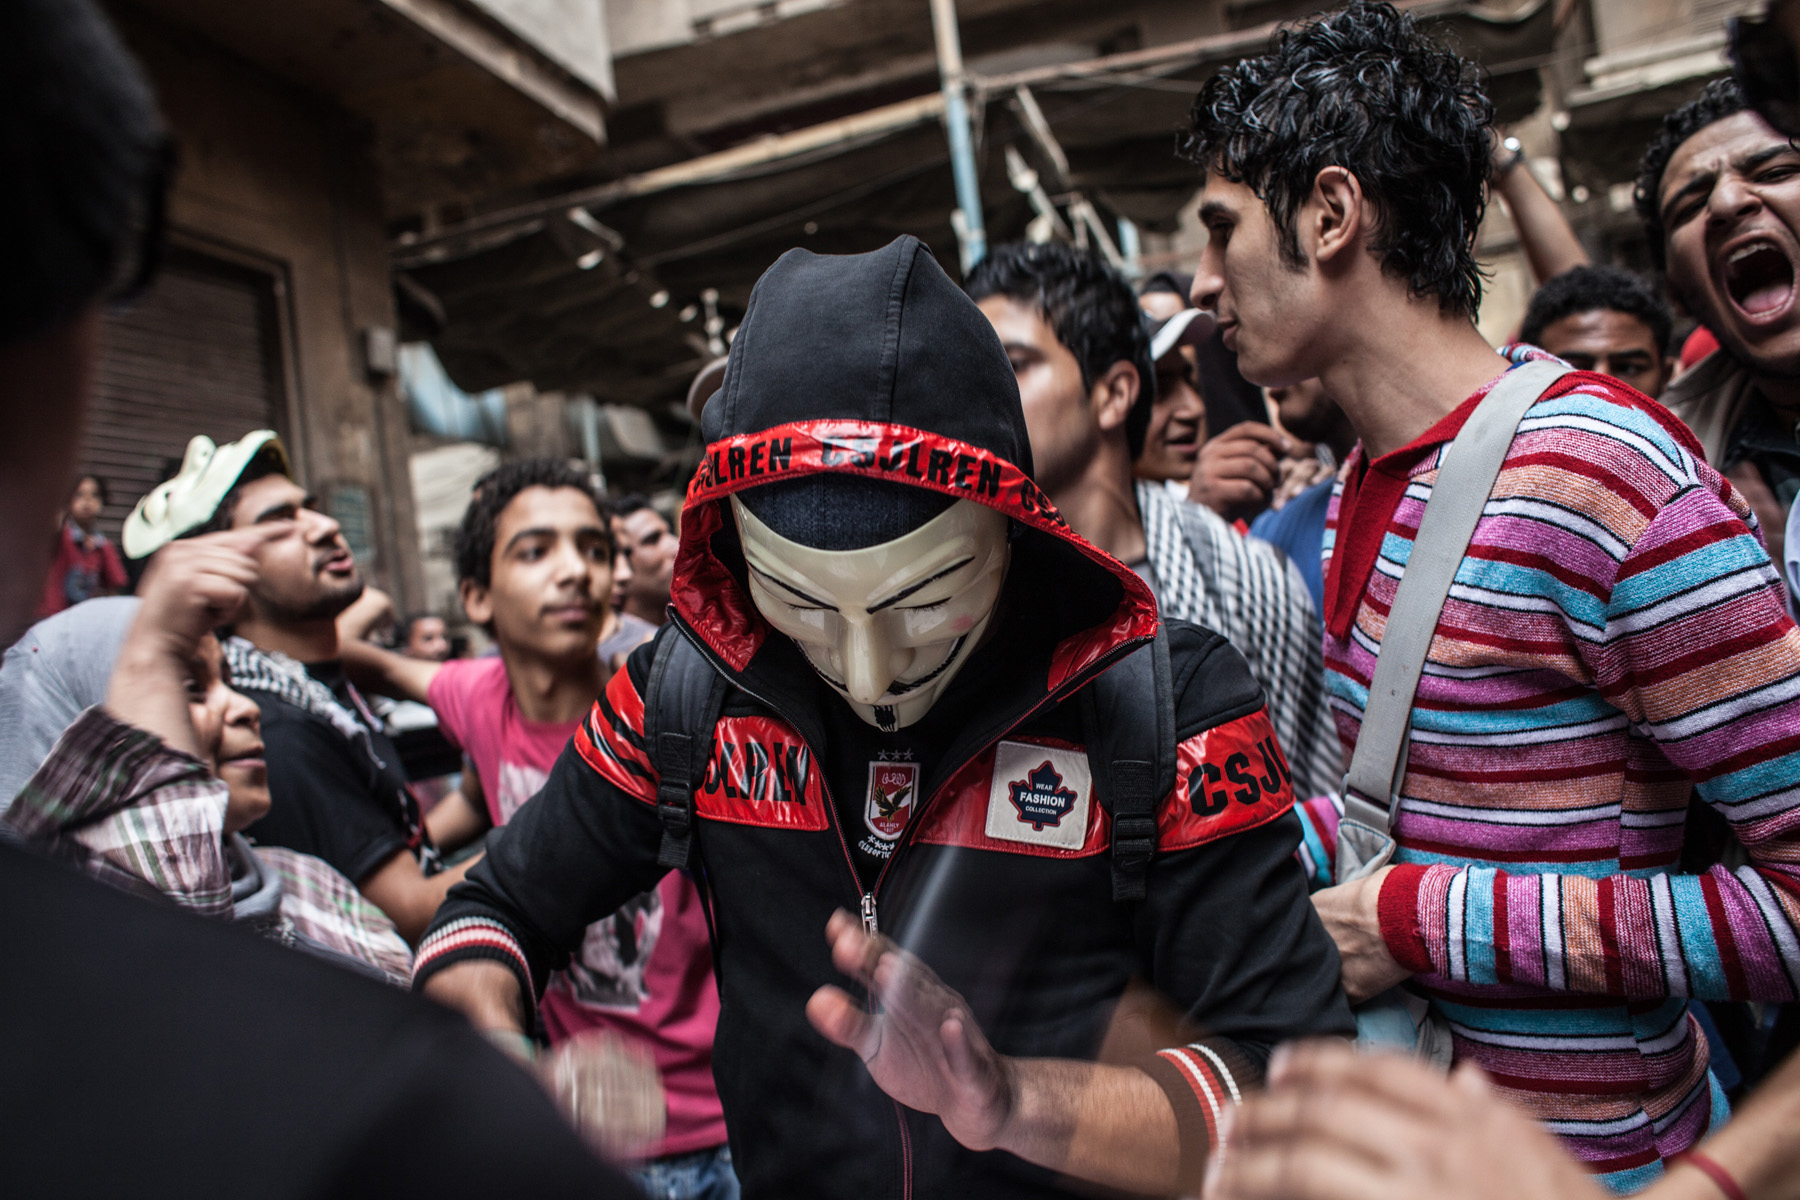 Ahlawy protesting in Mohamed Mahmoud Street in Cairo. One member is masked and is seen drumming